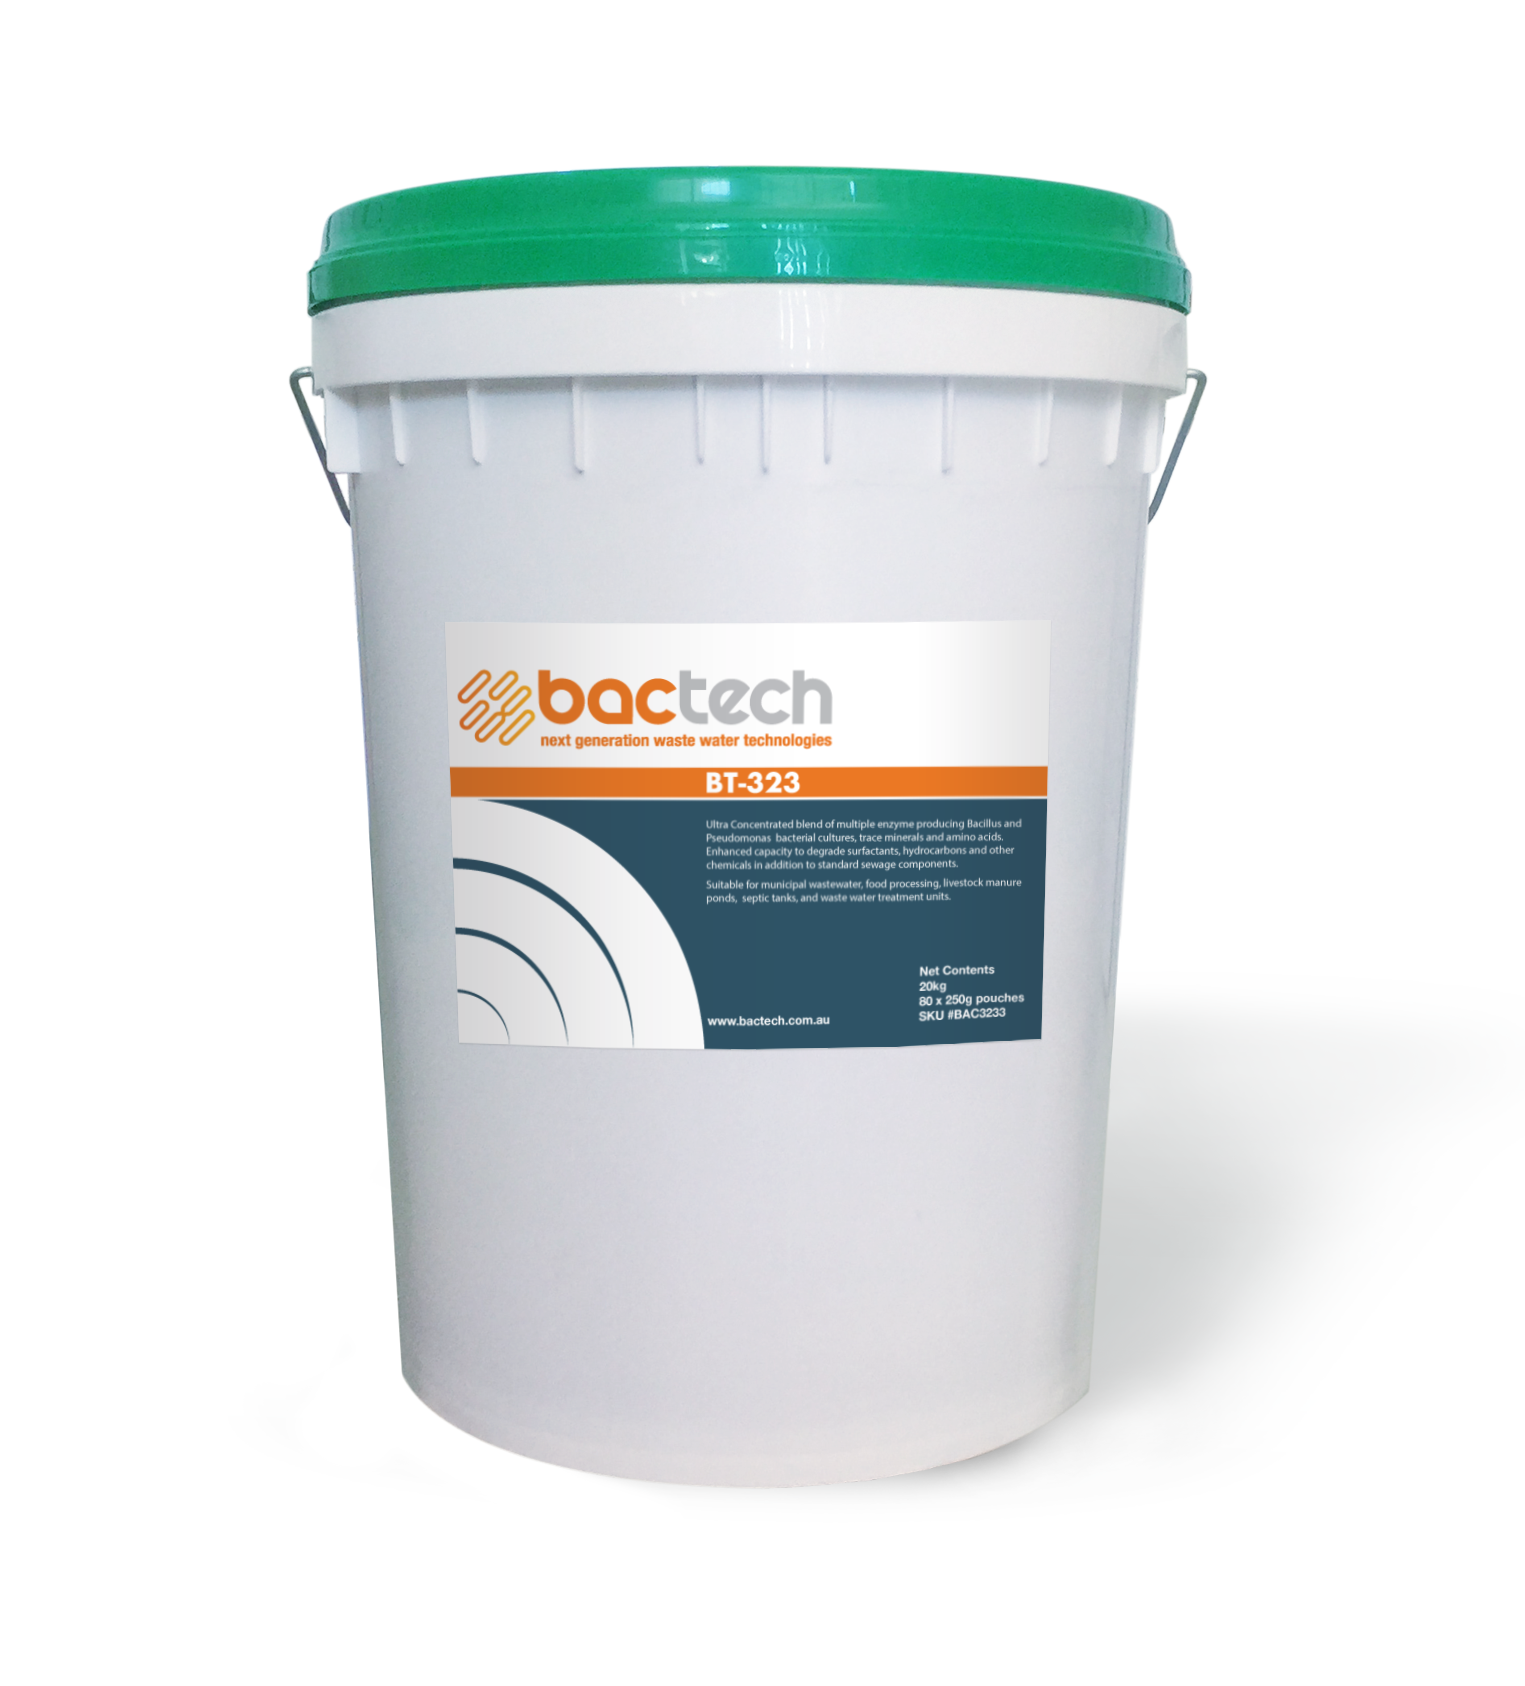 Bactech 323 - Bio bacterial Industrial Waste Water Treatment